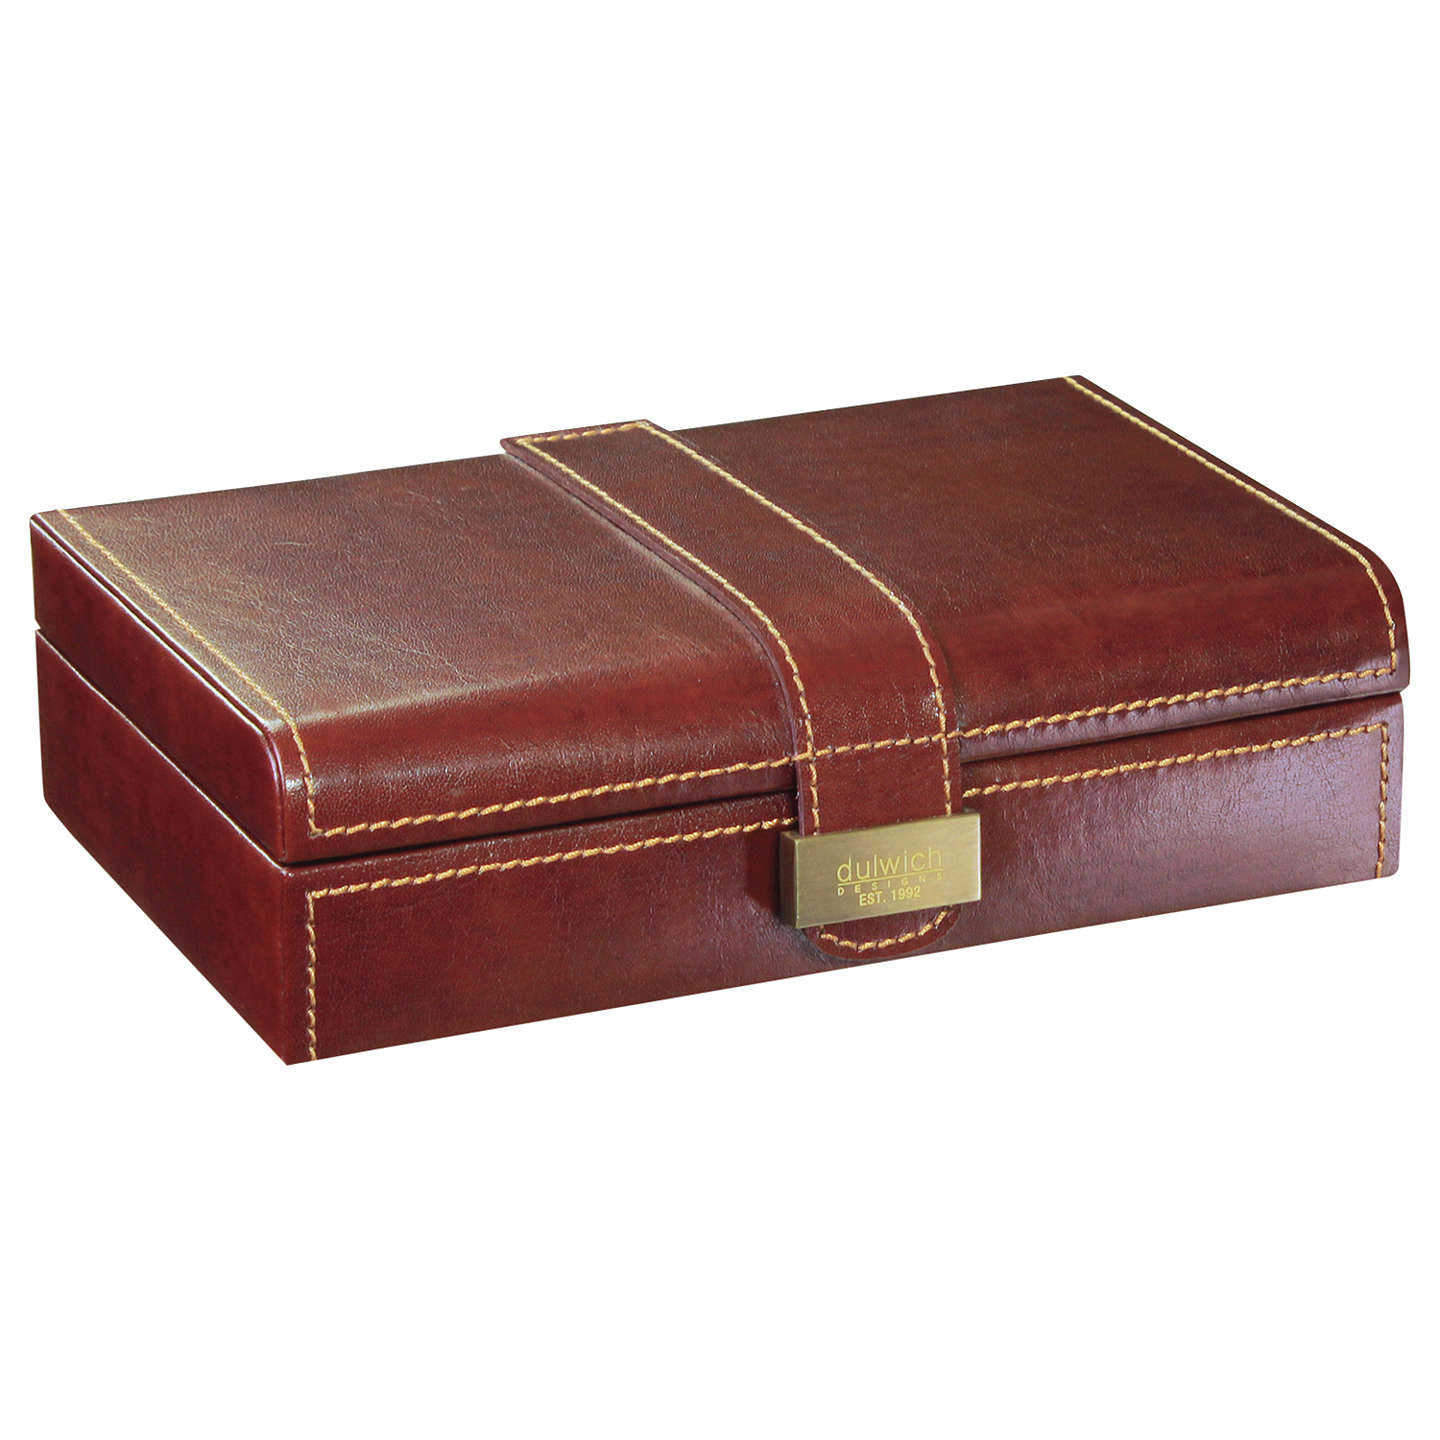 BuyDulwich Designs Heritage Cufflink Box, Leather, Brown Online at johnlewis.com